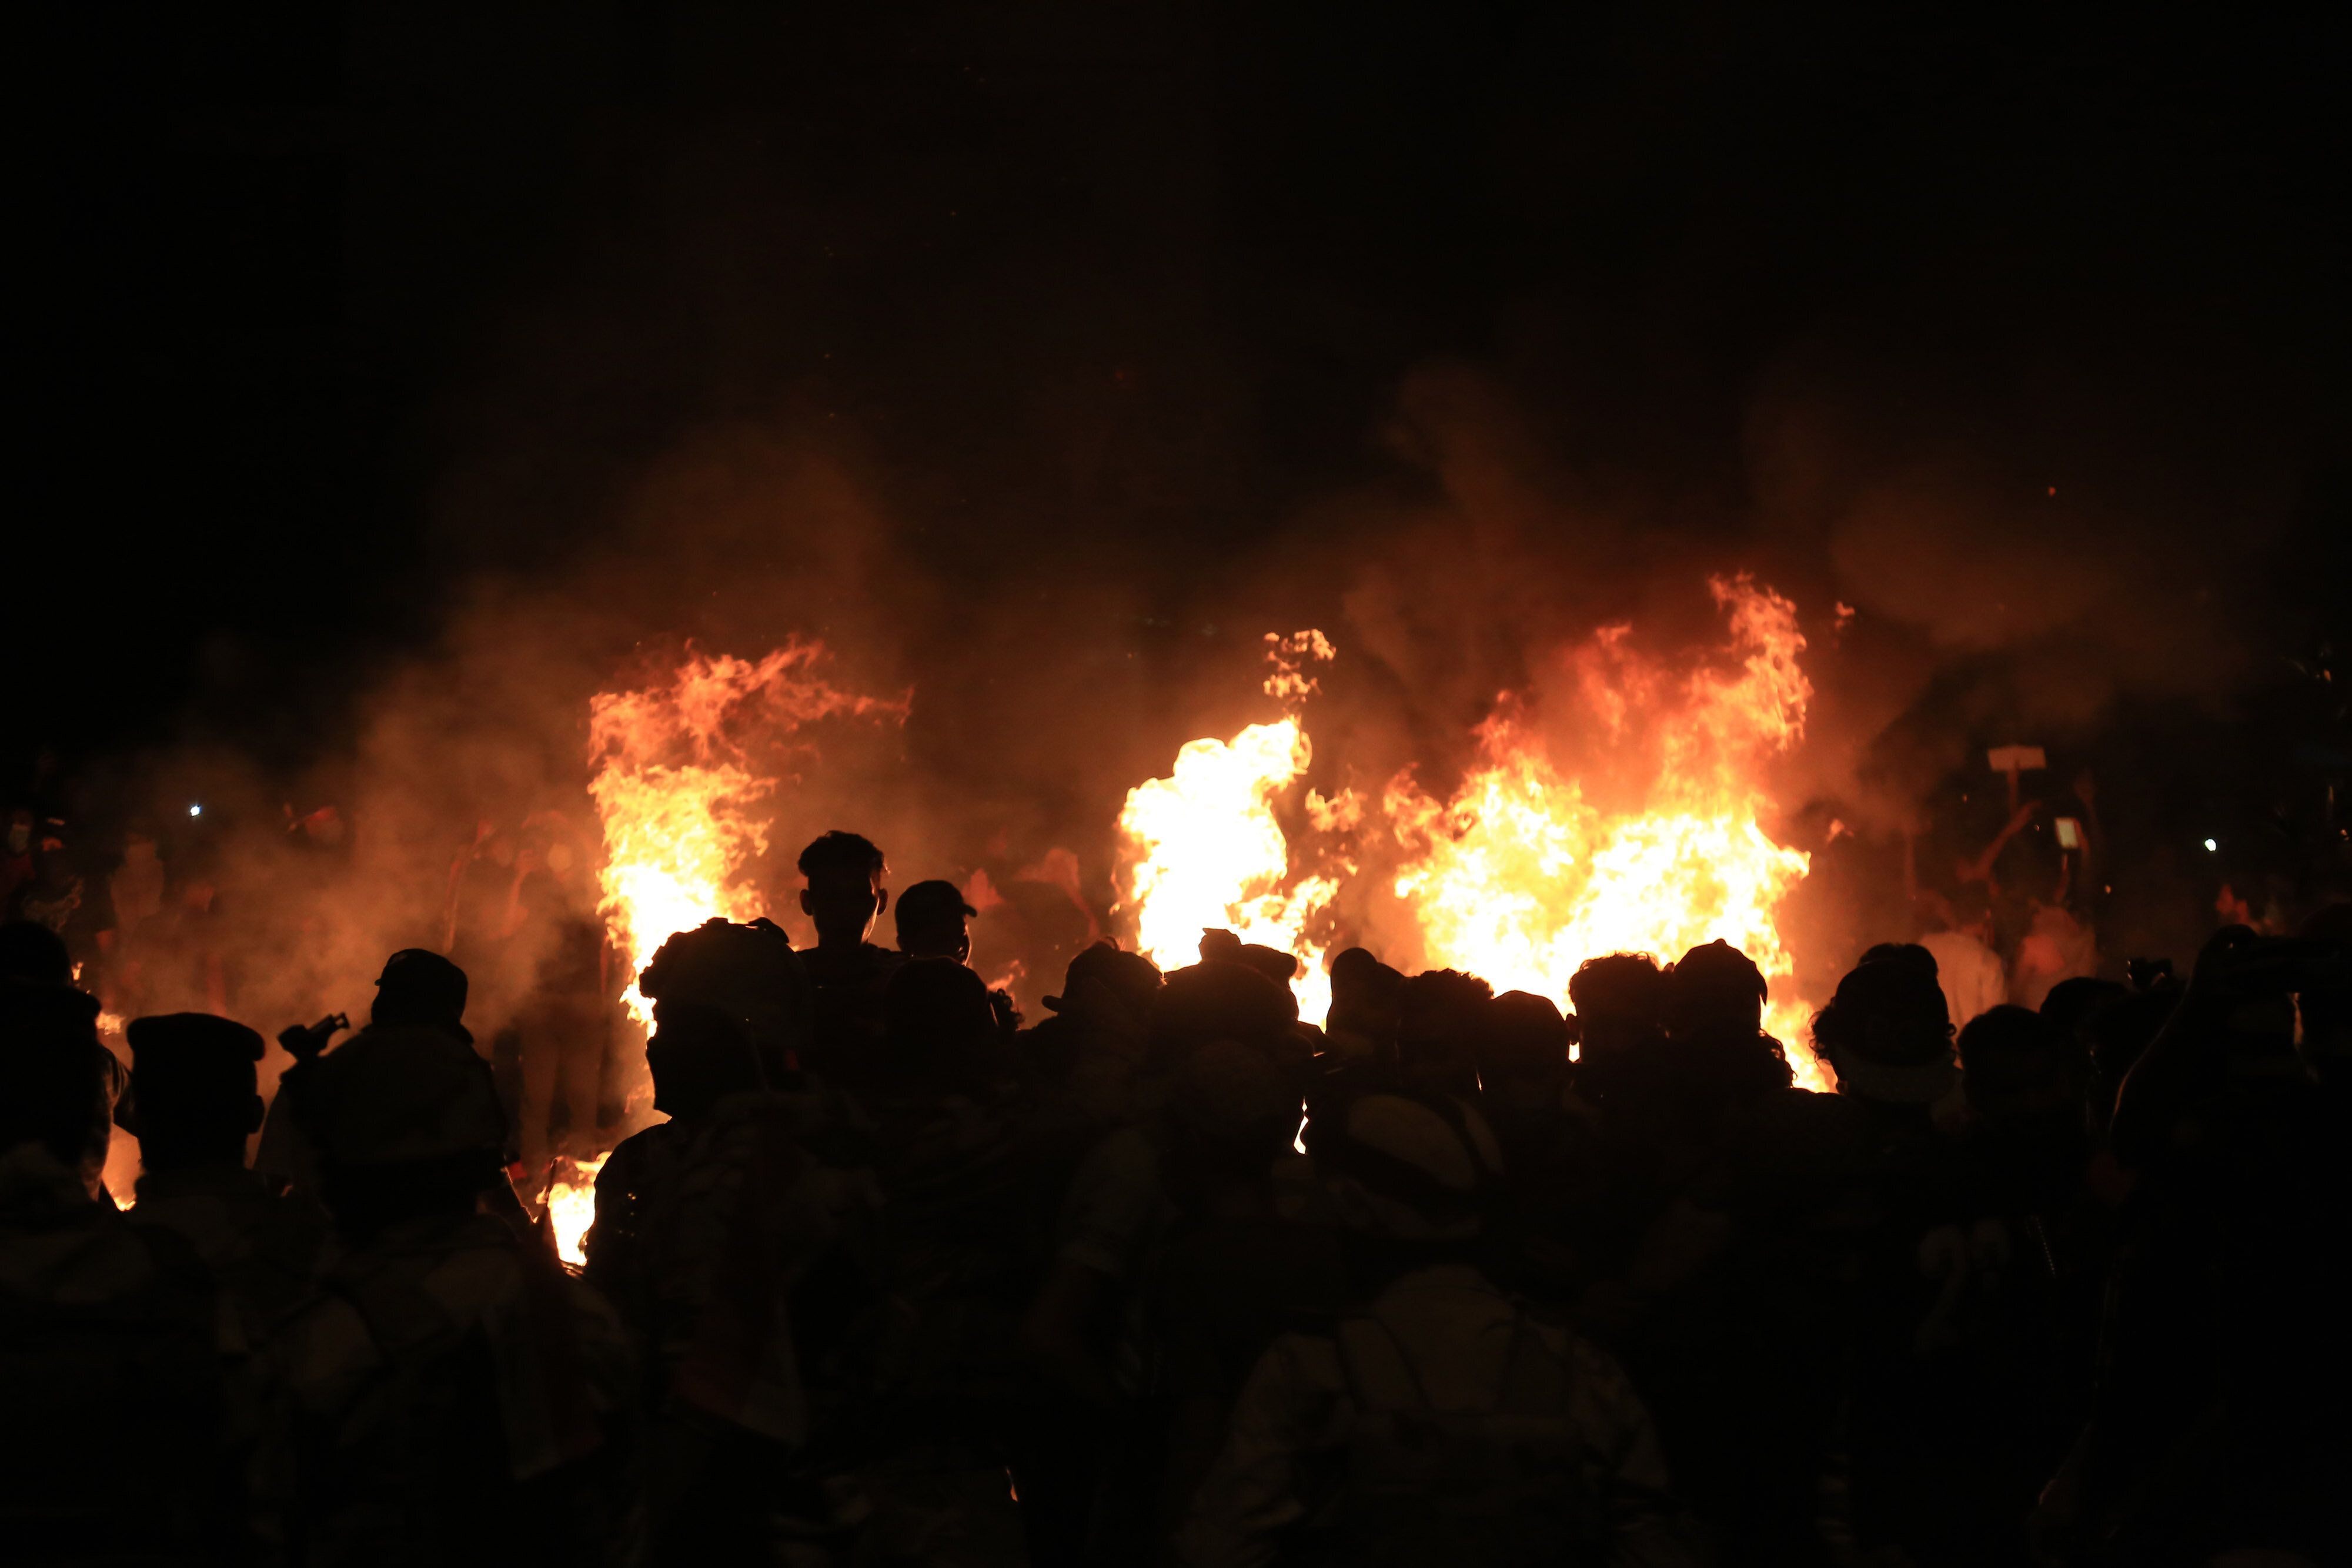 Burning tires light up the night skies during anti-government protests in the Shiite shrine city of Karbala on Monday night.